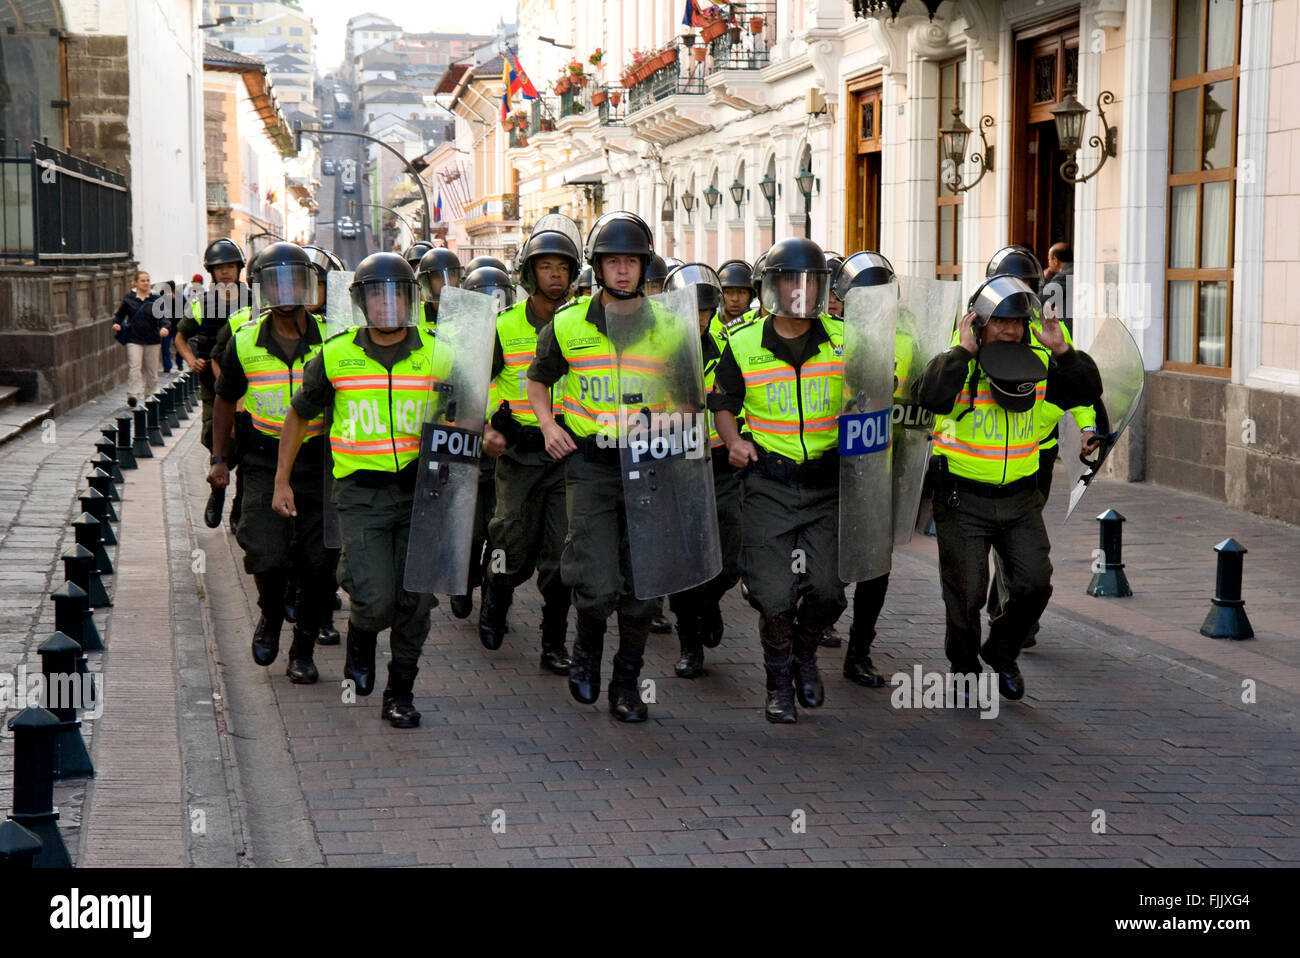 Riot police on charge in Quito, Ecuador - Stock Image